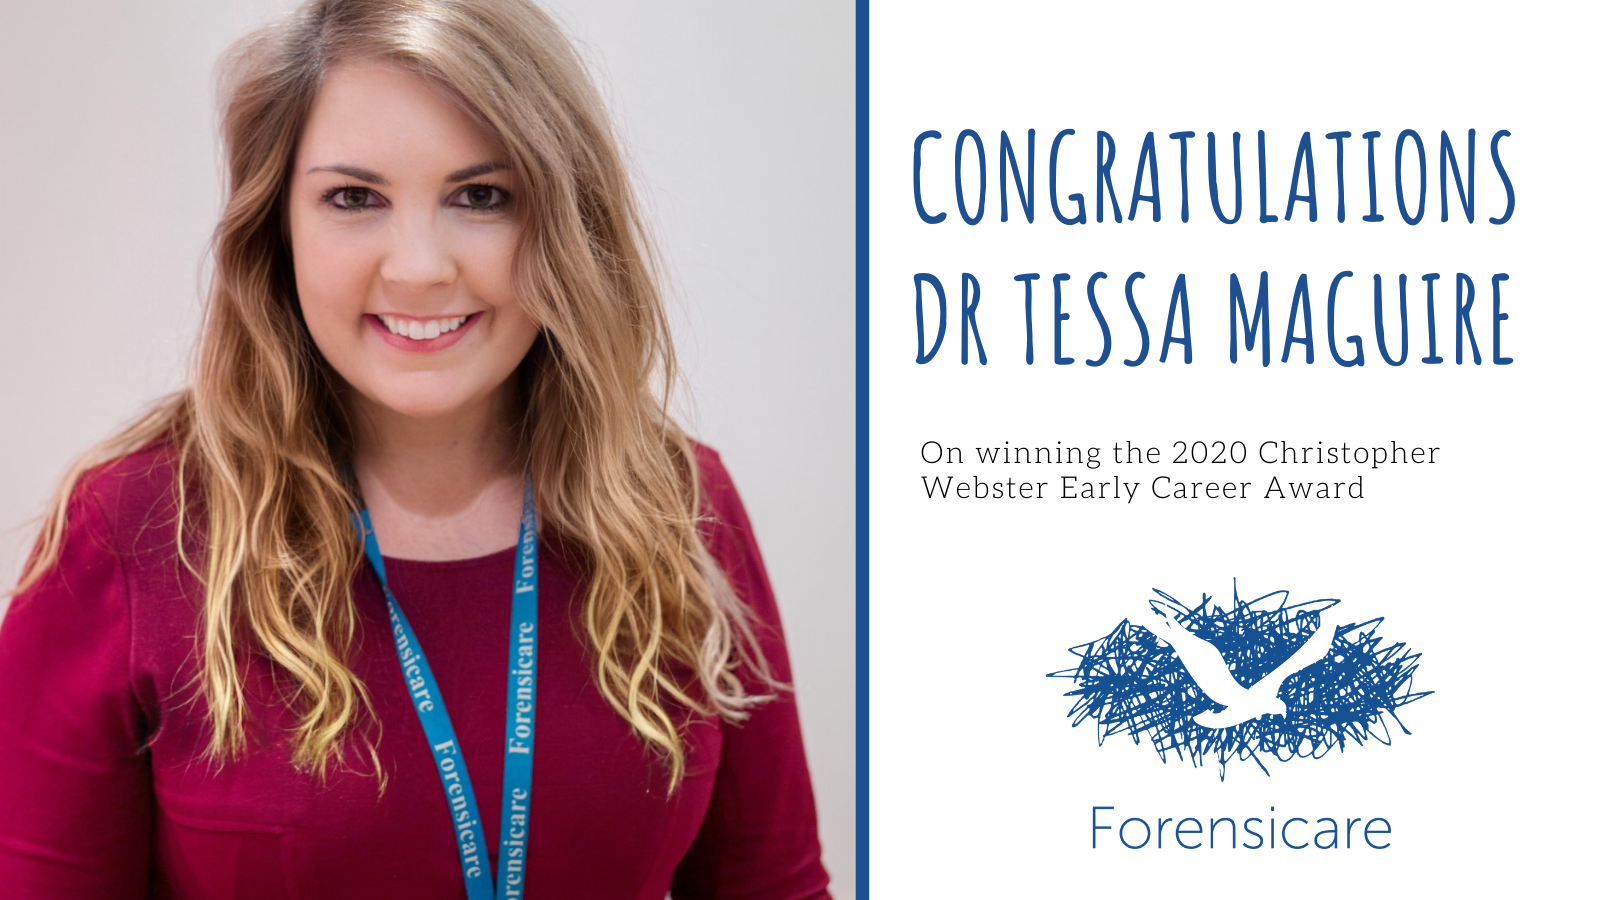 Dr Tessa Maguire has been announced as the winner of the 2020 Christopher Webster Early Career Award for her efforts in forensic mental health nursing practice and research